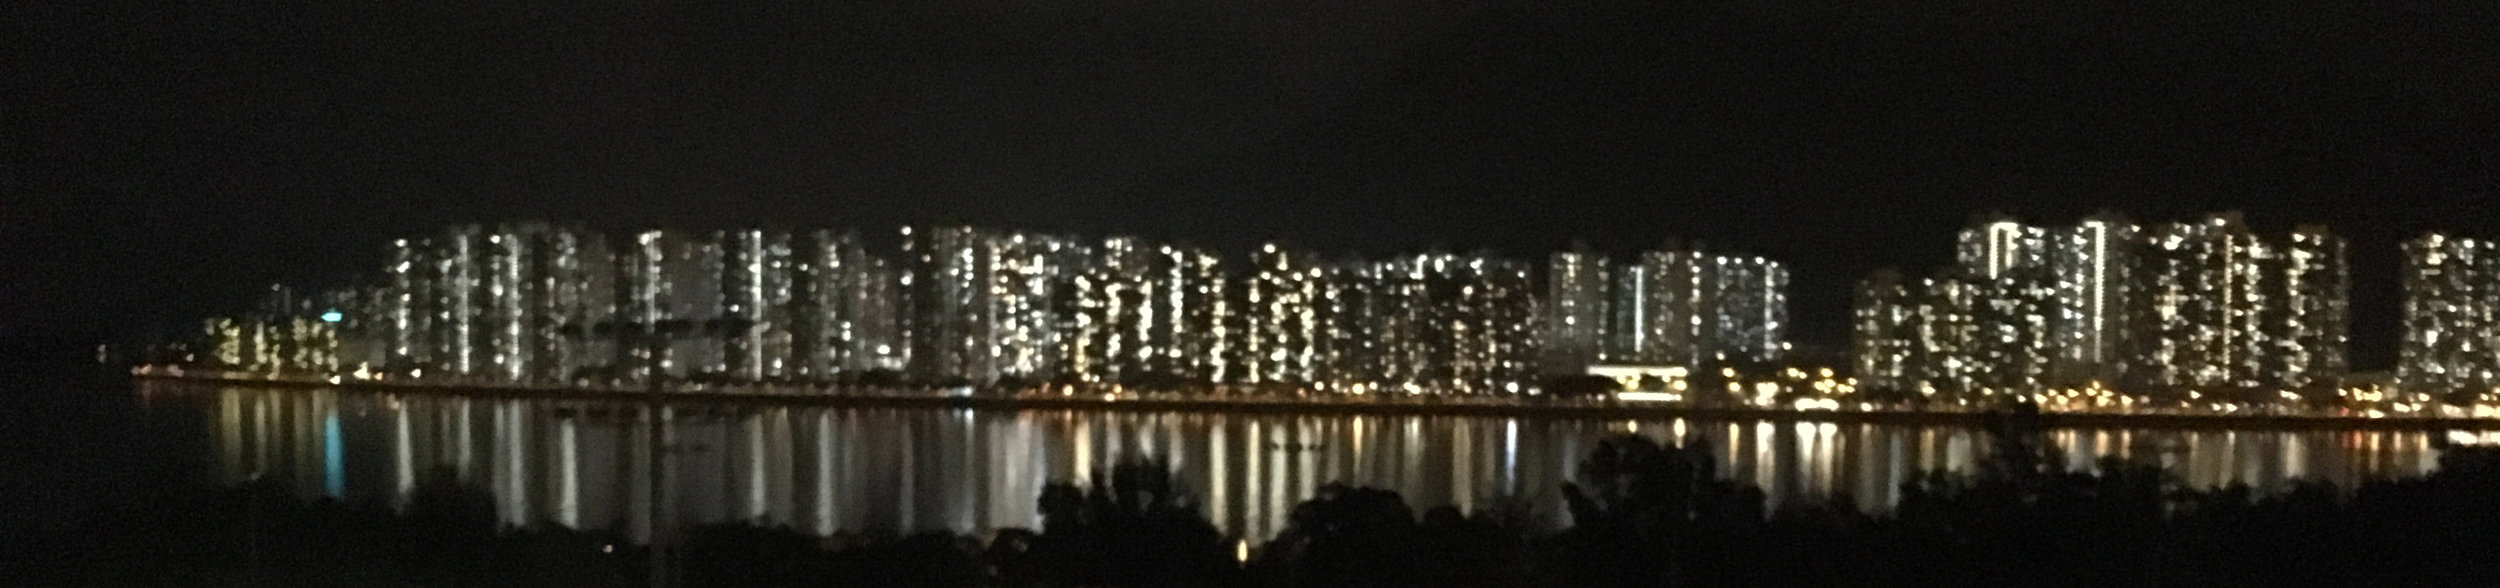 """Chris flew to Hong Kong in June 2017 to speak at the Germinal Stem Cell Biology Gordon Research Conference. This year's focus was on """"Programming and Reprogramming the Vertebrate Germline"""". This is a view of the Hong Kong skyline across from a balcony at Morningside College, the site of the Wednesday night social."""